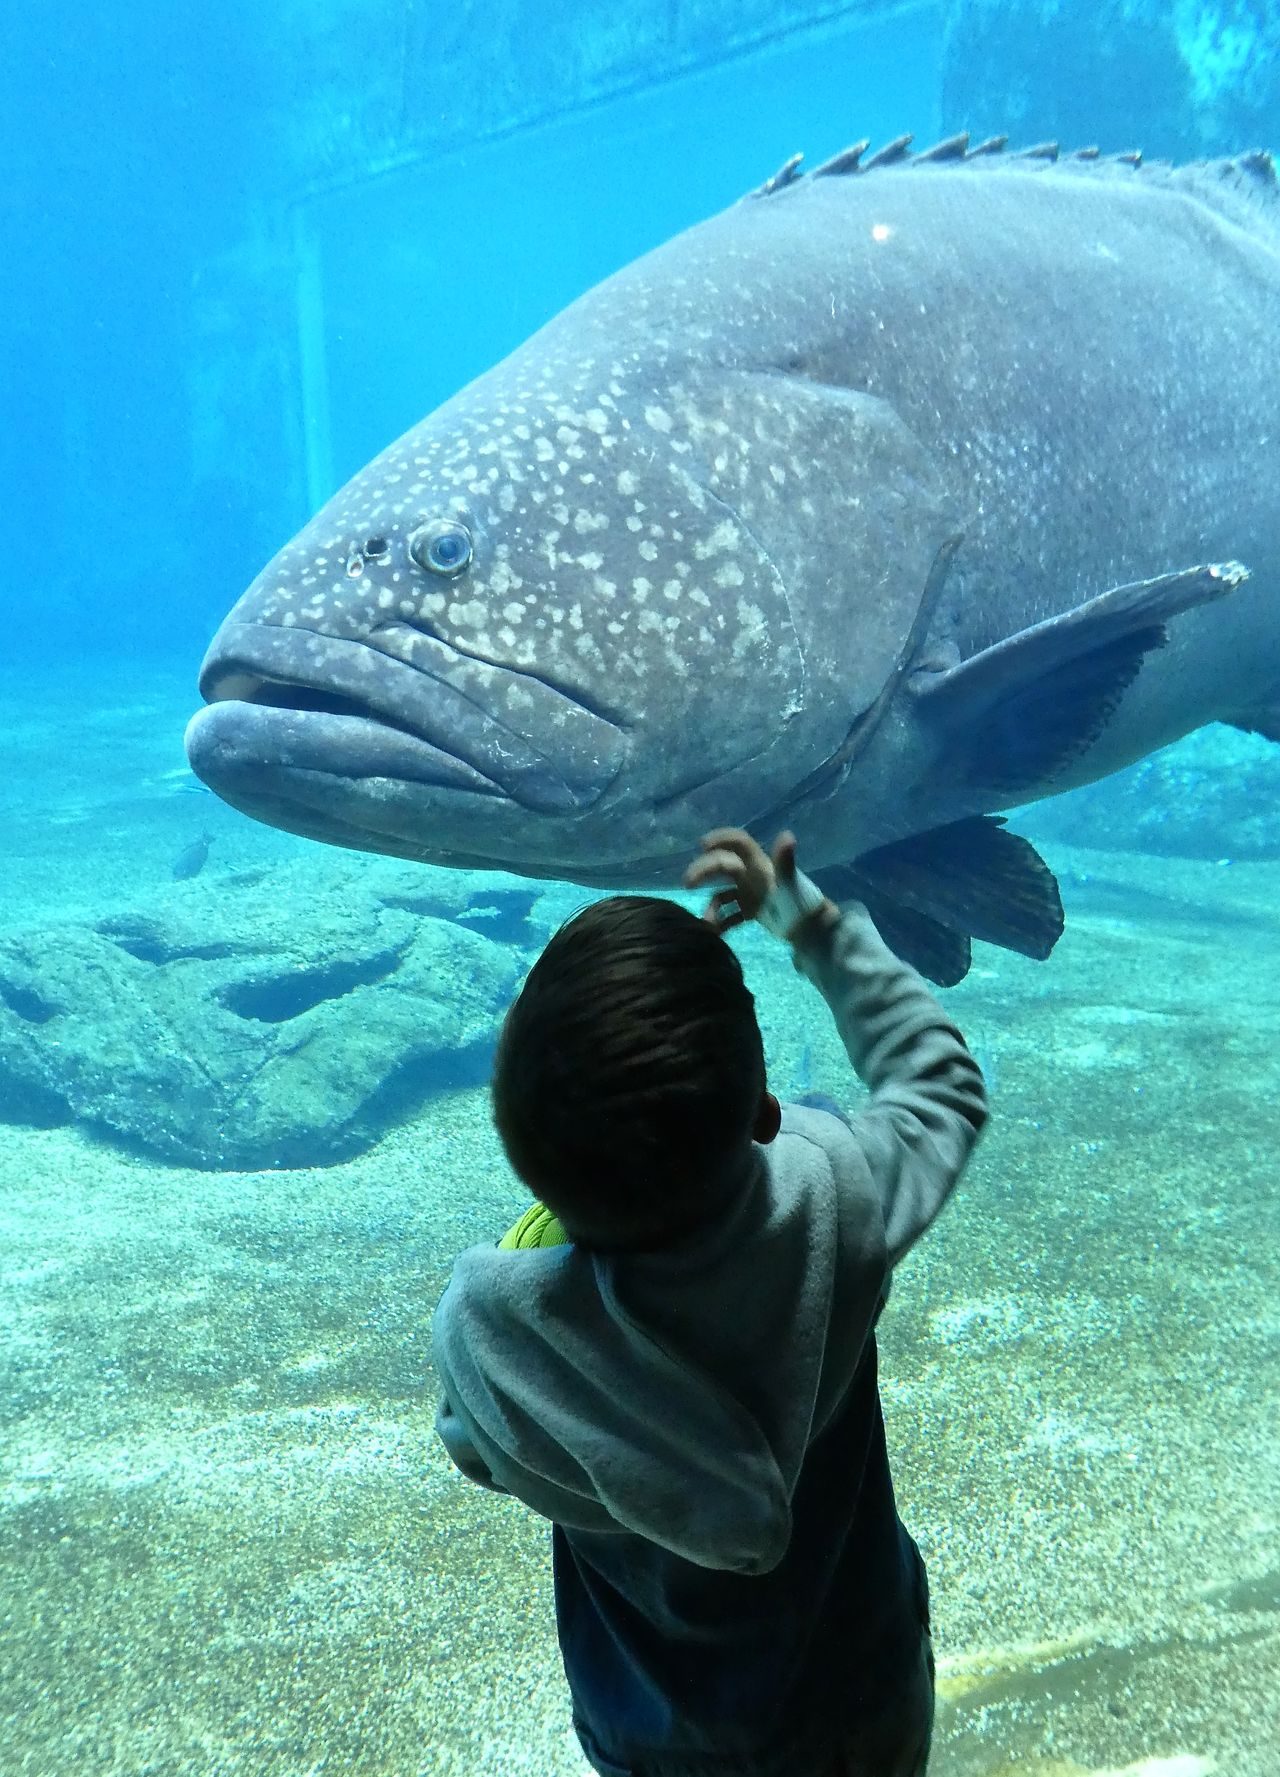 Animal Themes Aquarium Beauty In Nature Big Fish Boy Childhood Discovery Fisch Fish Indoors  Junge One Person People Real People Rear View Sea Life UnderSea Underwater Water